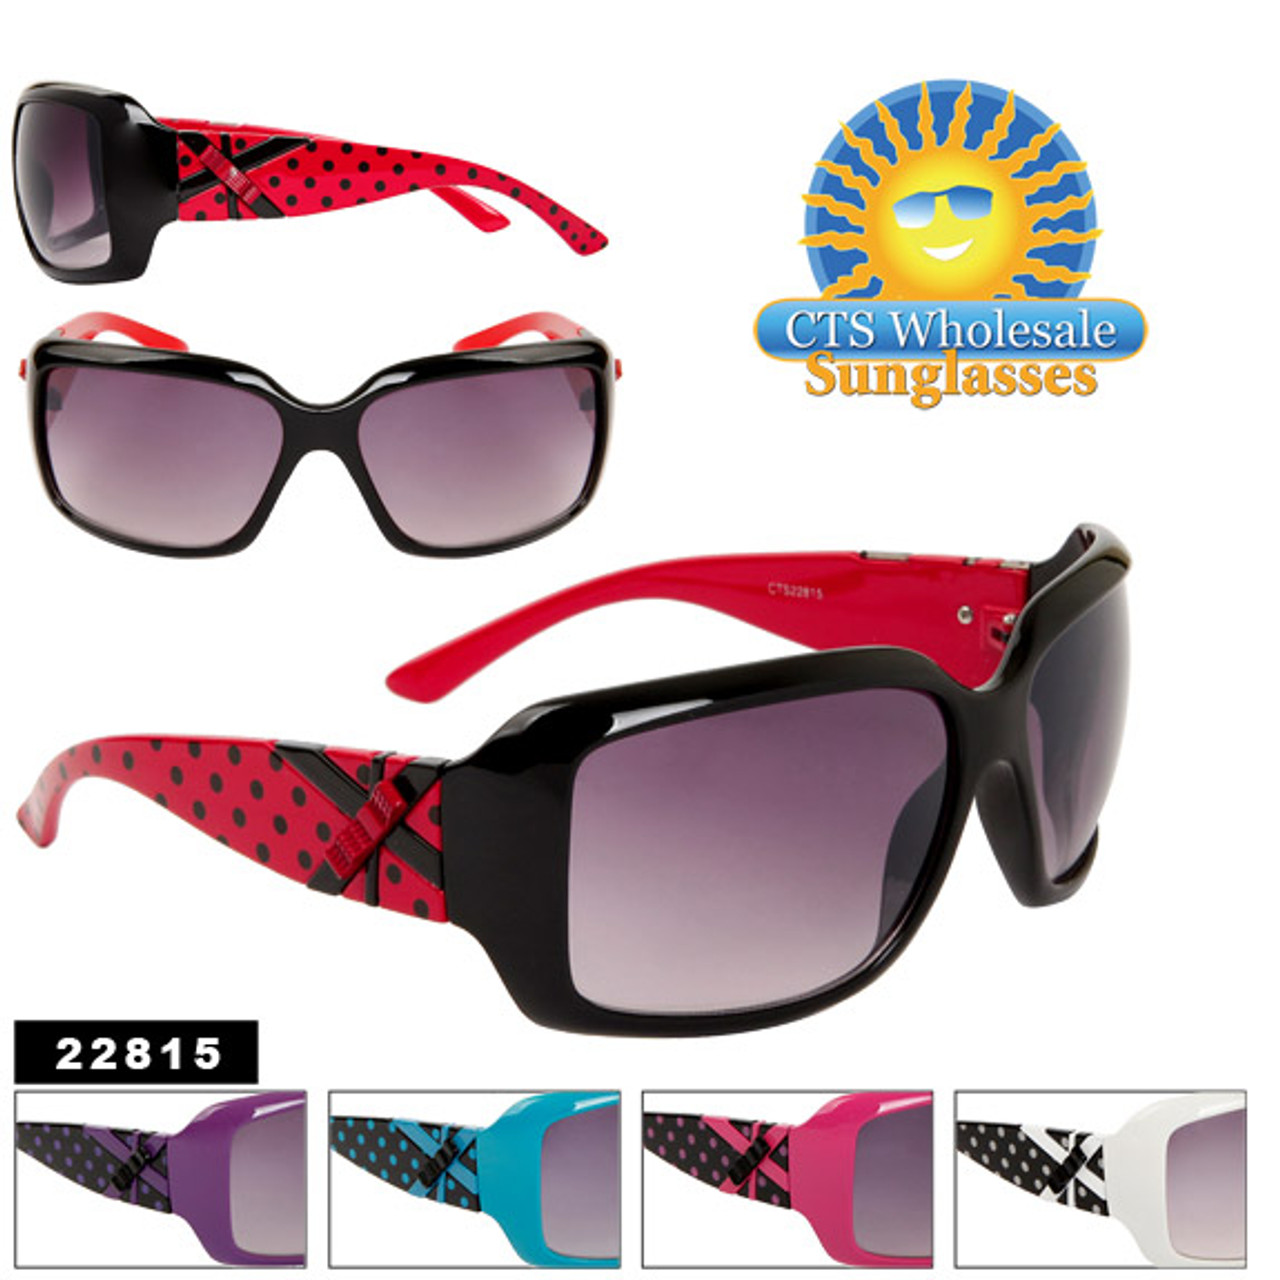 Fashion Sunglasses Wholesale 22815